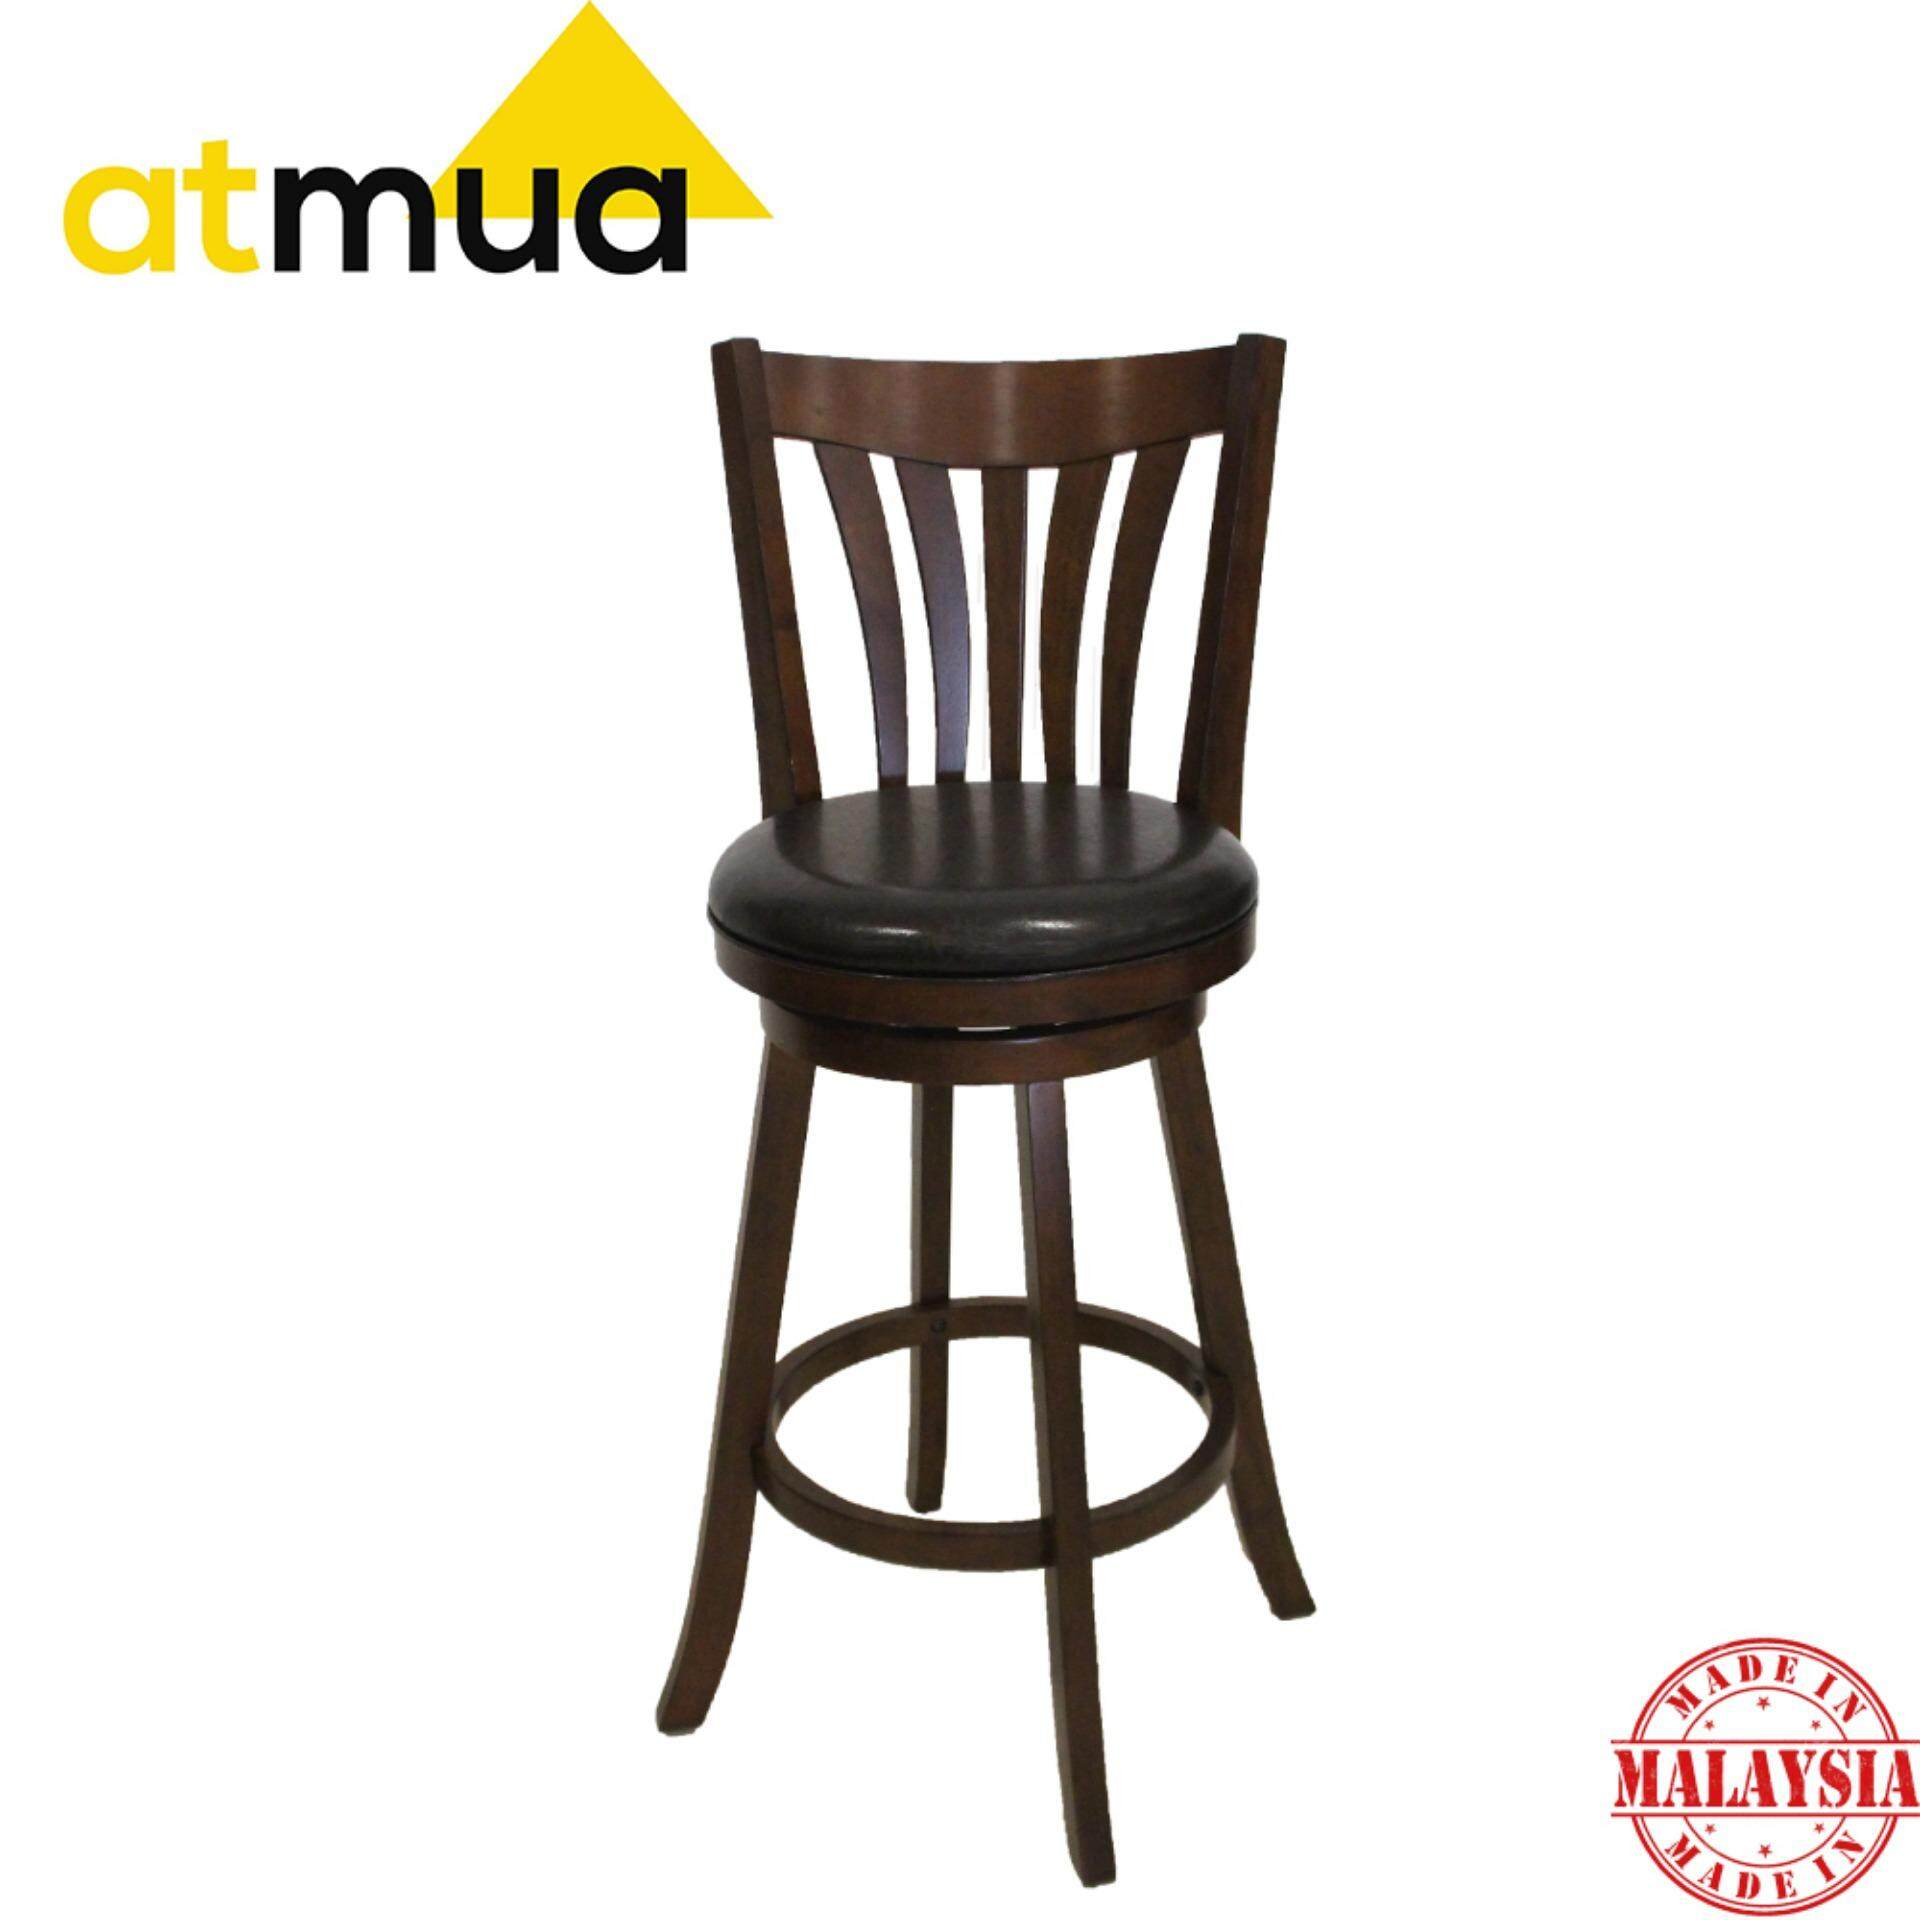 Atmua Camry Swivel Bar Chair 29 inch [Full Solid Wood]